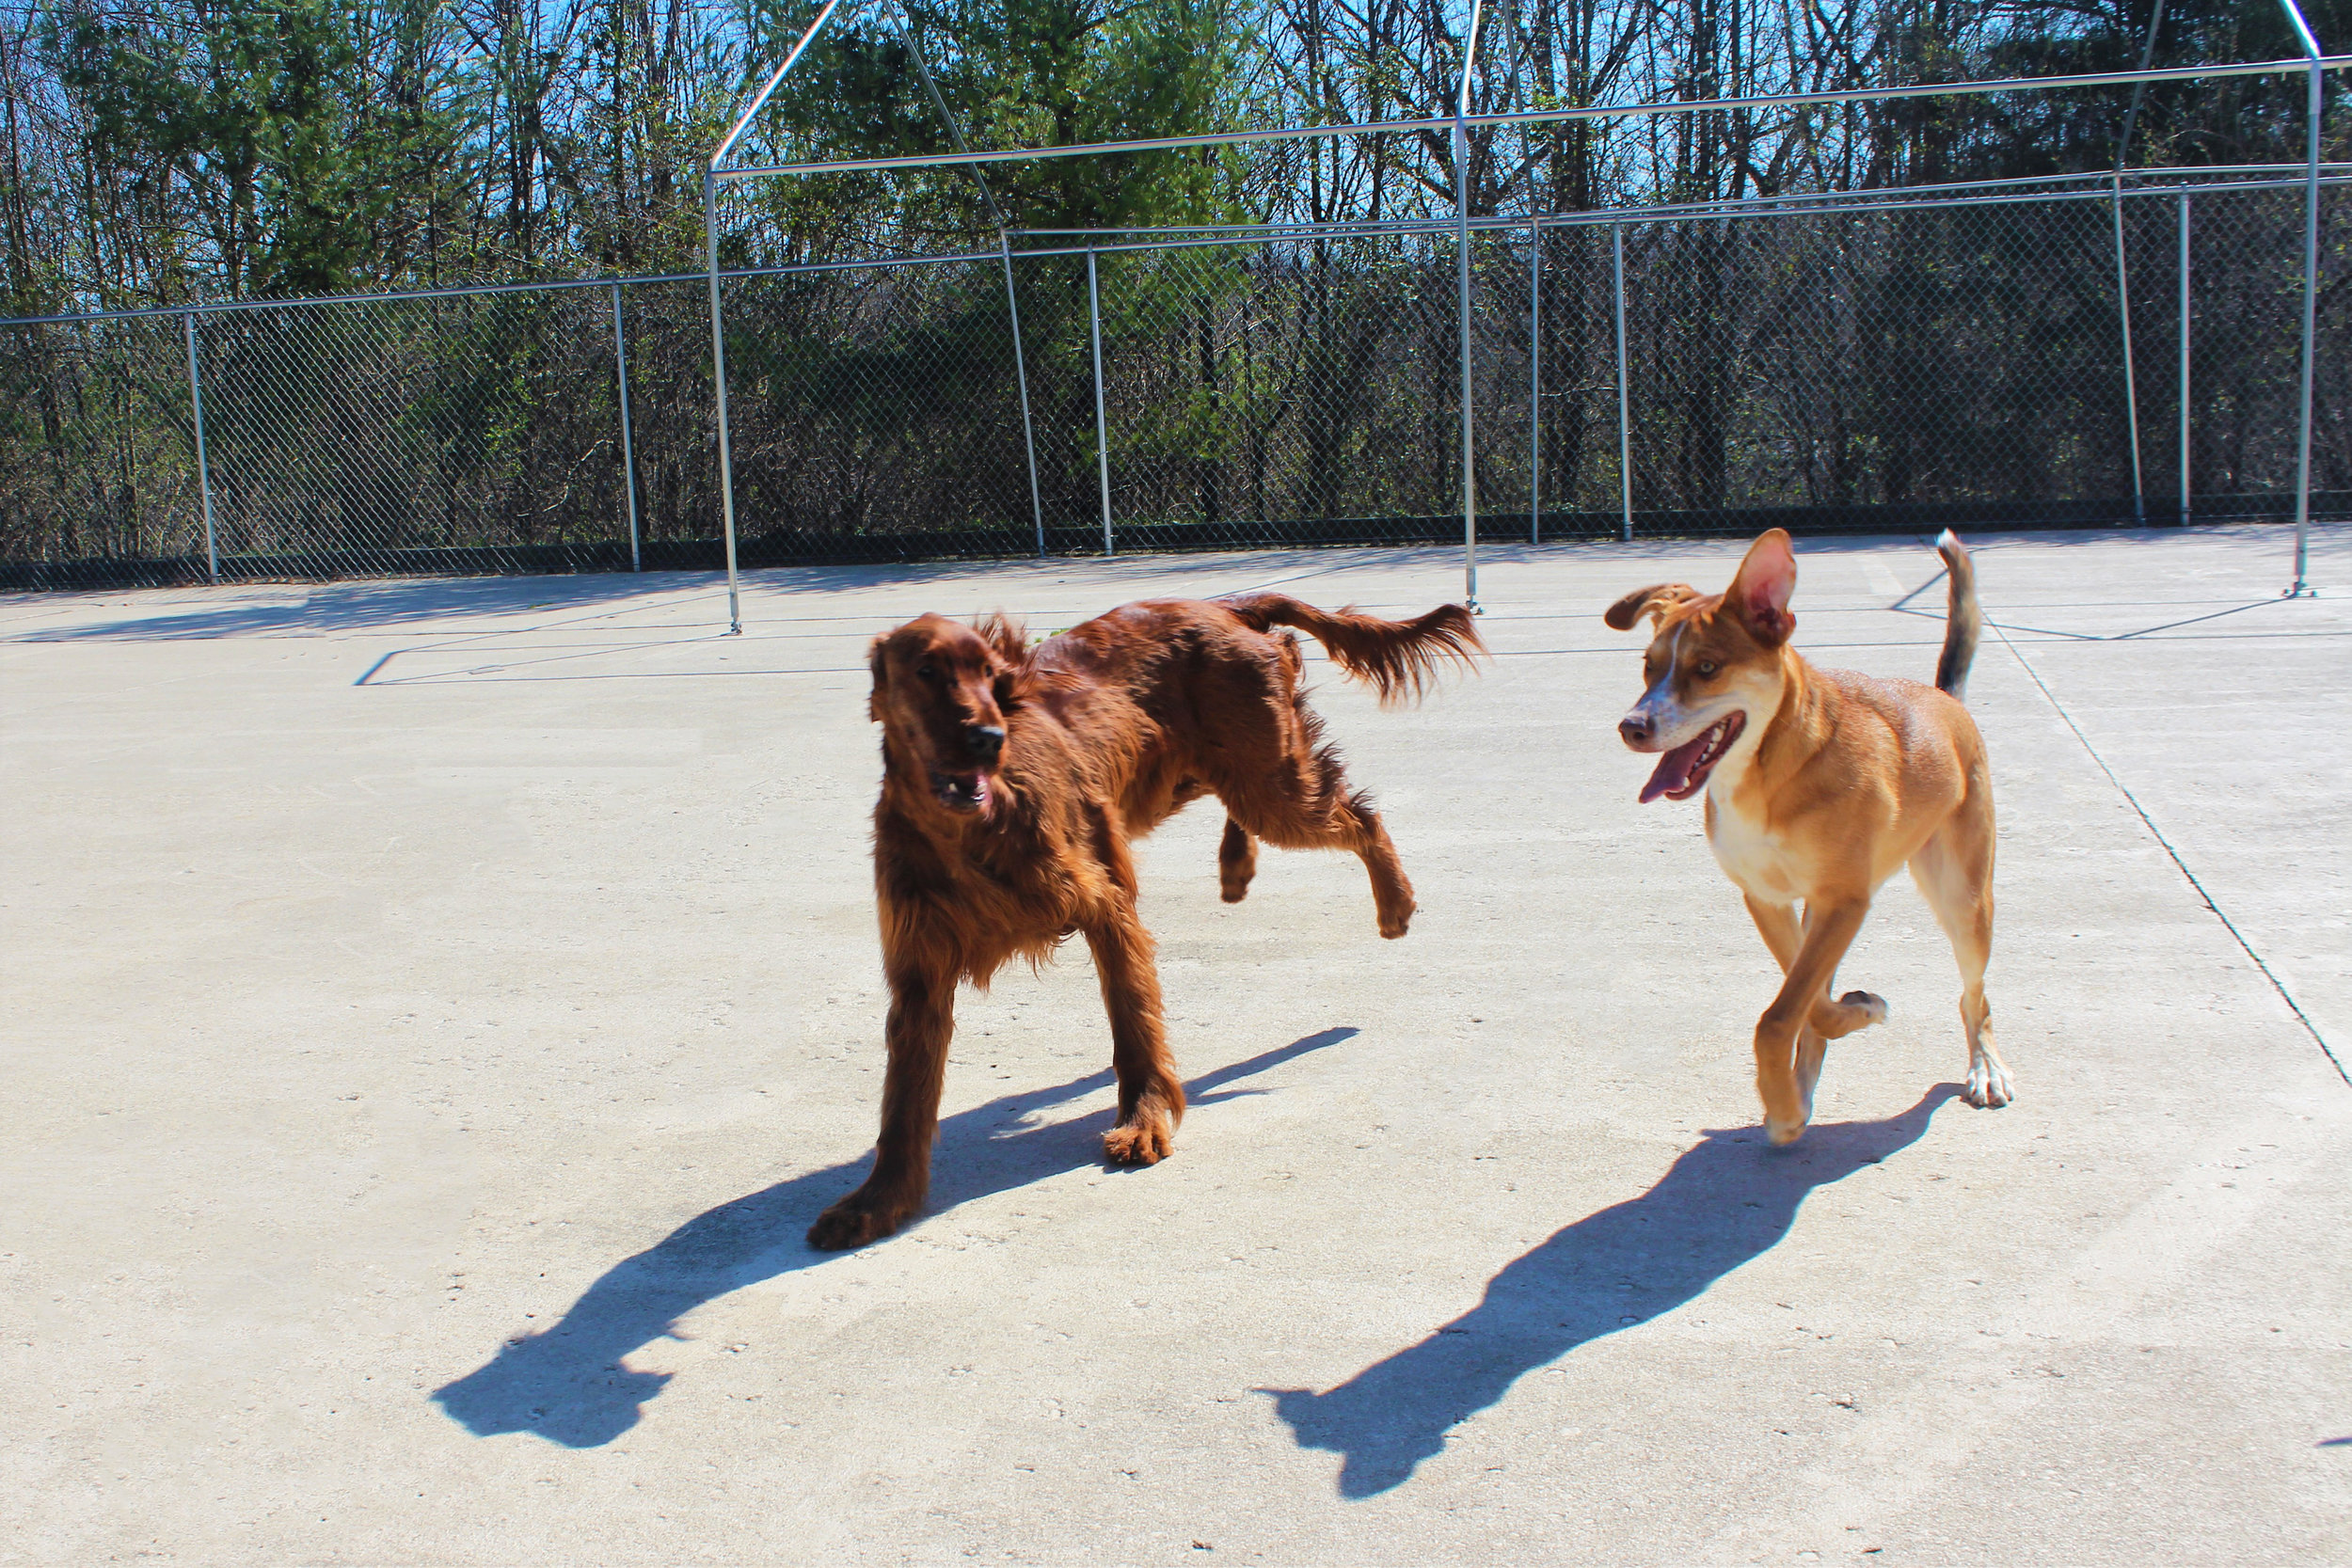 Maddie and her friend Bailey are two of the fastest dogs we have. The speed at which they operate is hard to explain. I would be hard pressed to find a human fast enough to catch them.